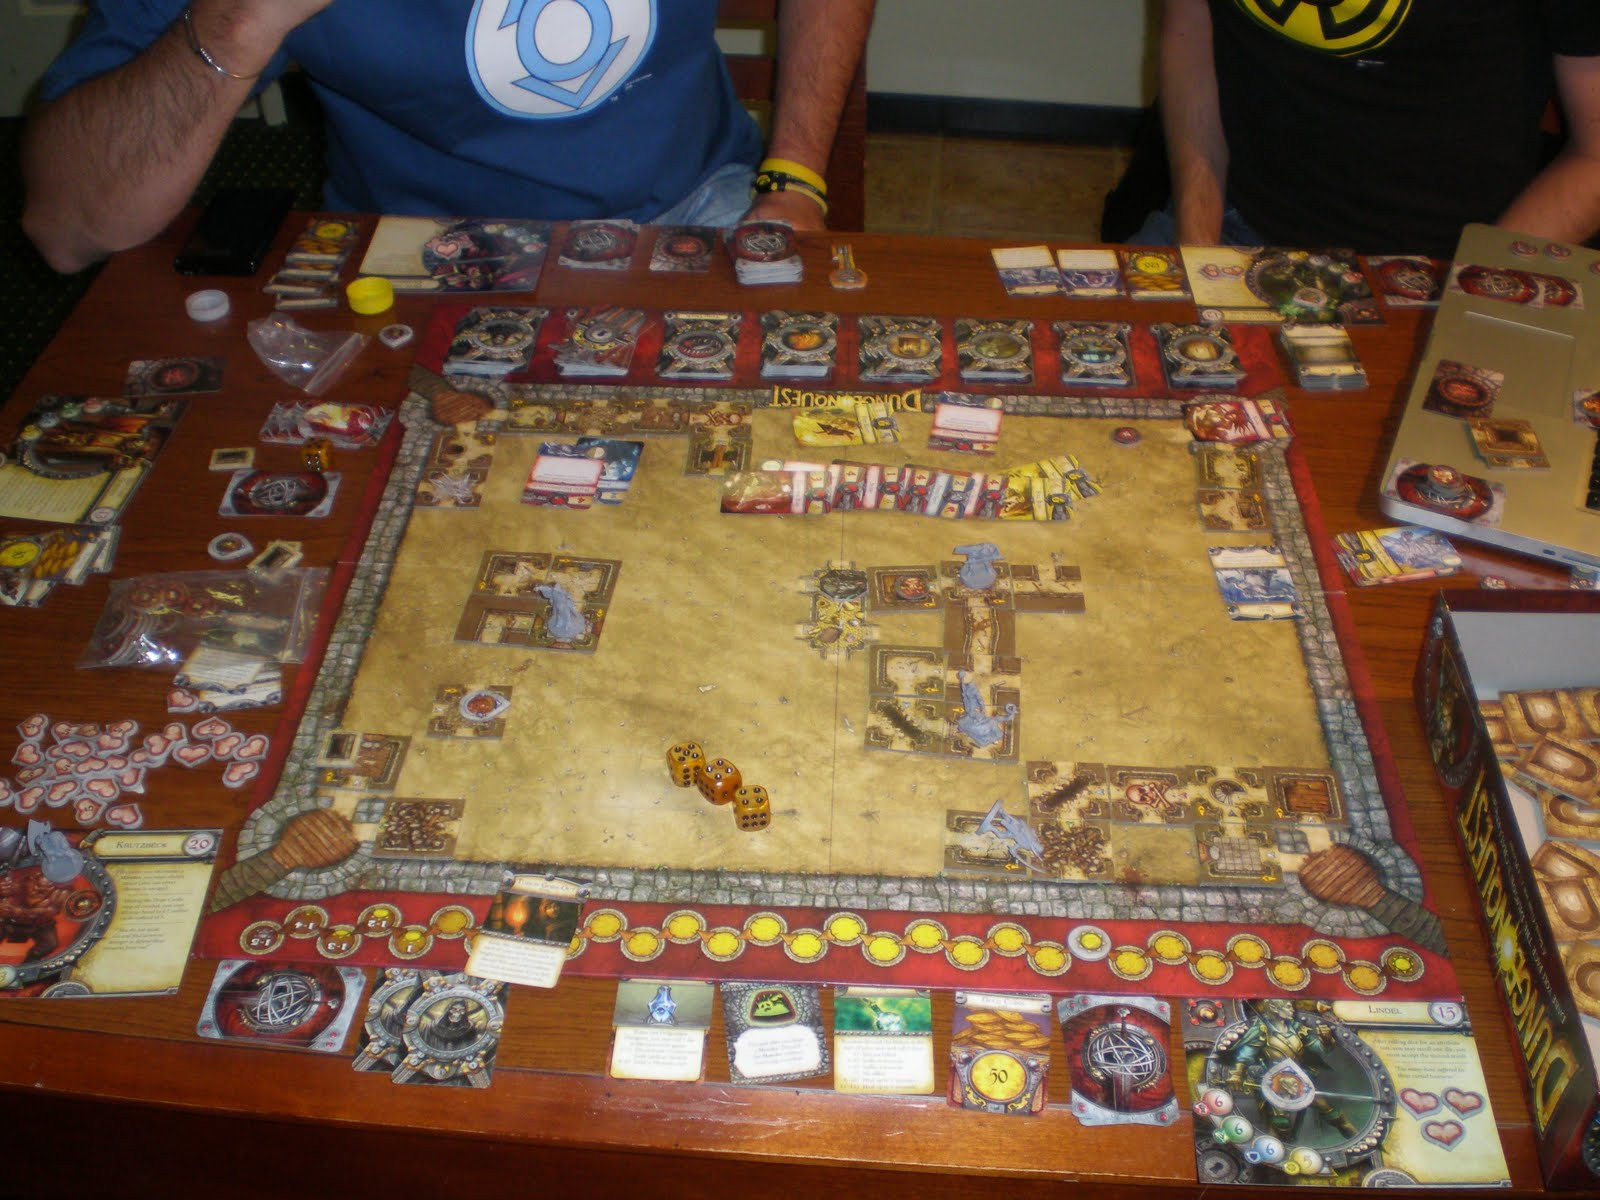 Inside terrinoth dungeonquest isola illyon - Dungeon gioco da tavolo ...